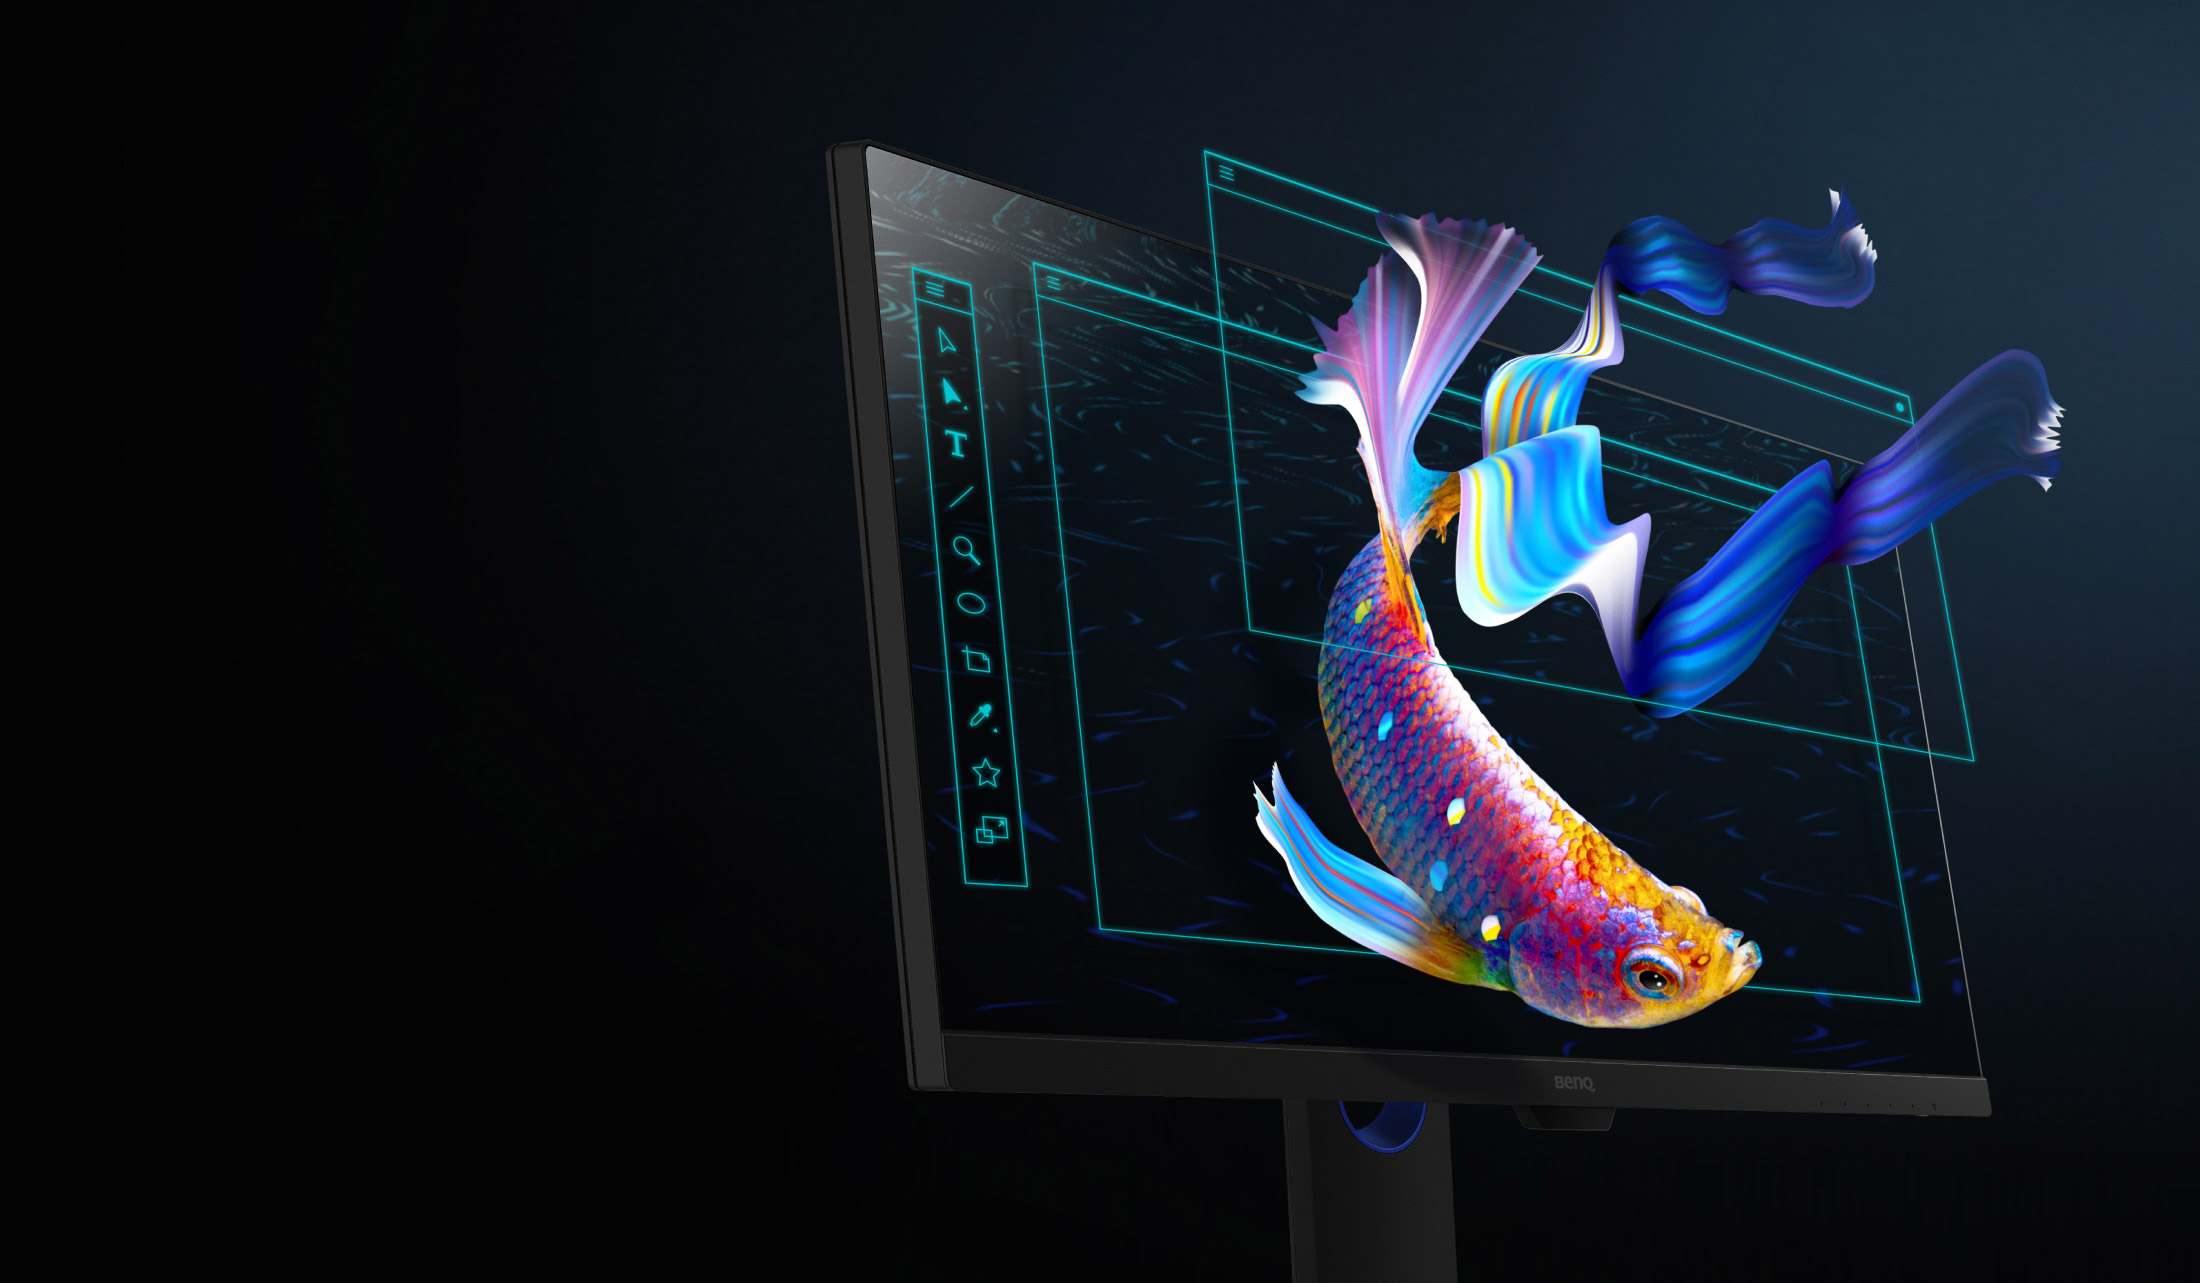 PD2705Q QHD 1440p Graphic Design monitor